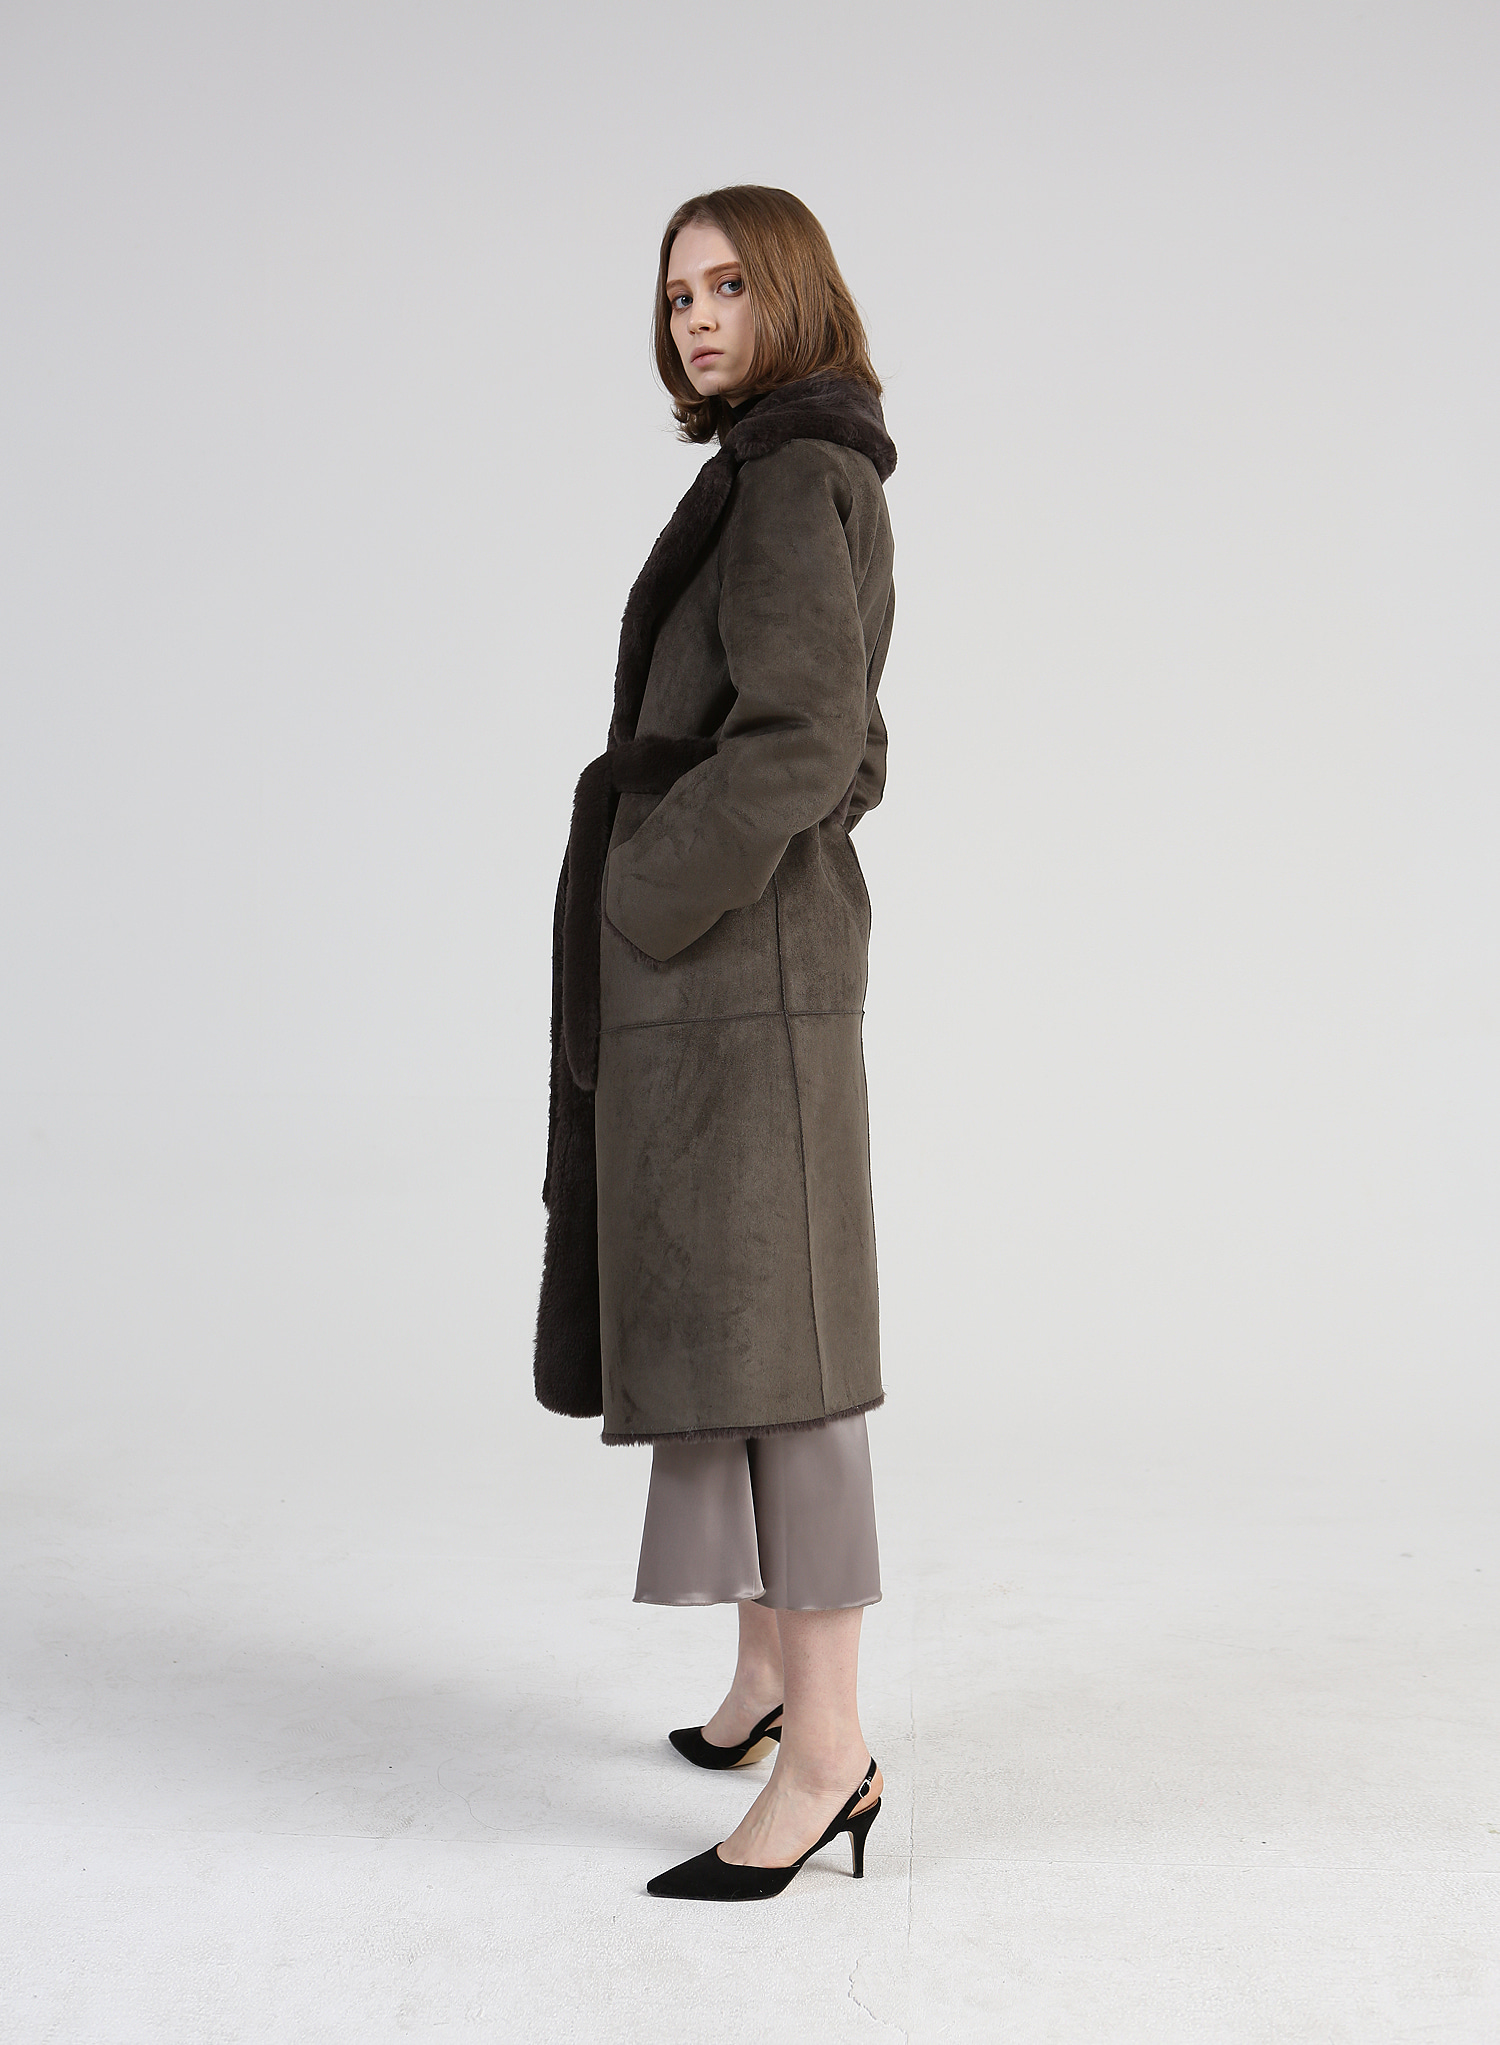 J.M.REVERSIBLE MOUTON COAT / ASH KHAKI